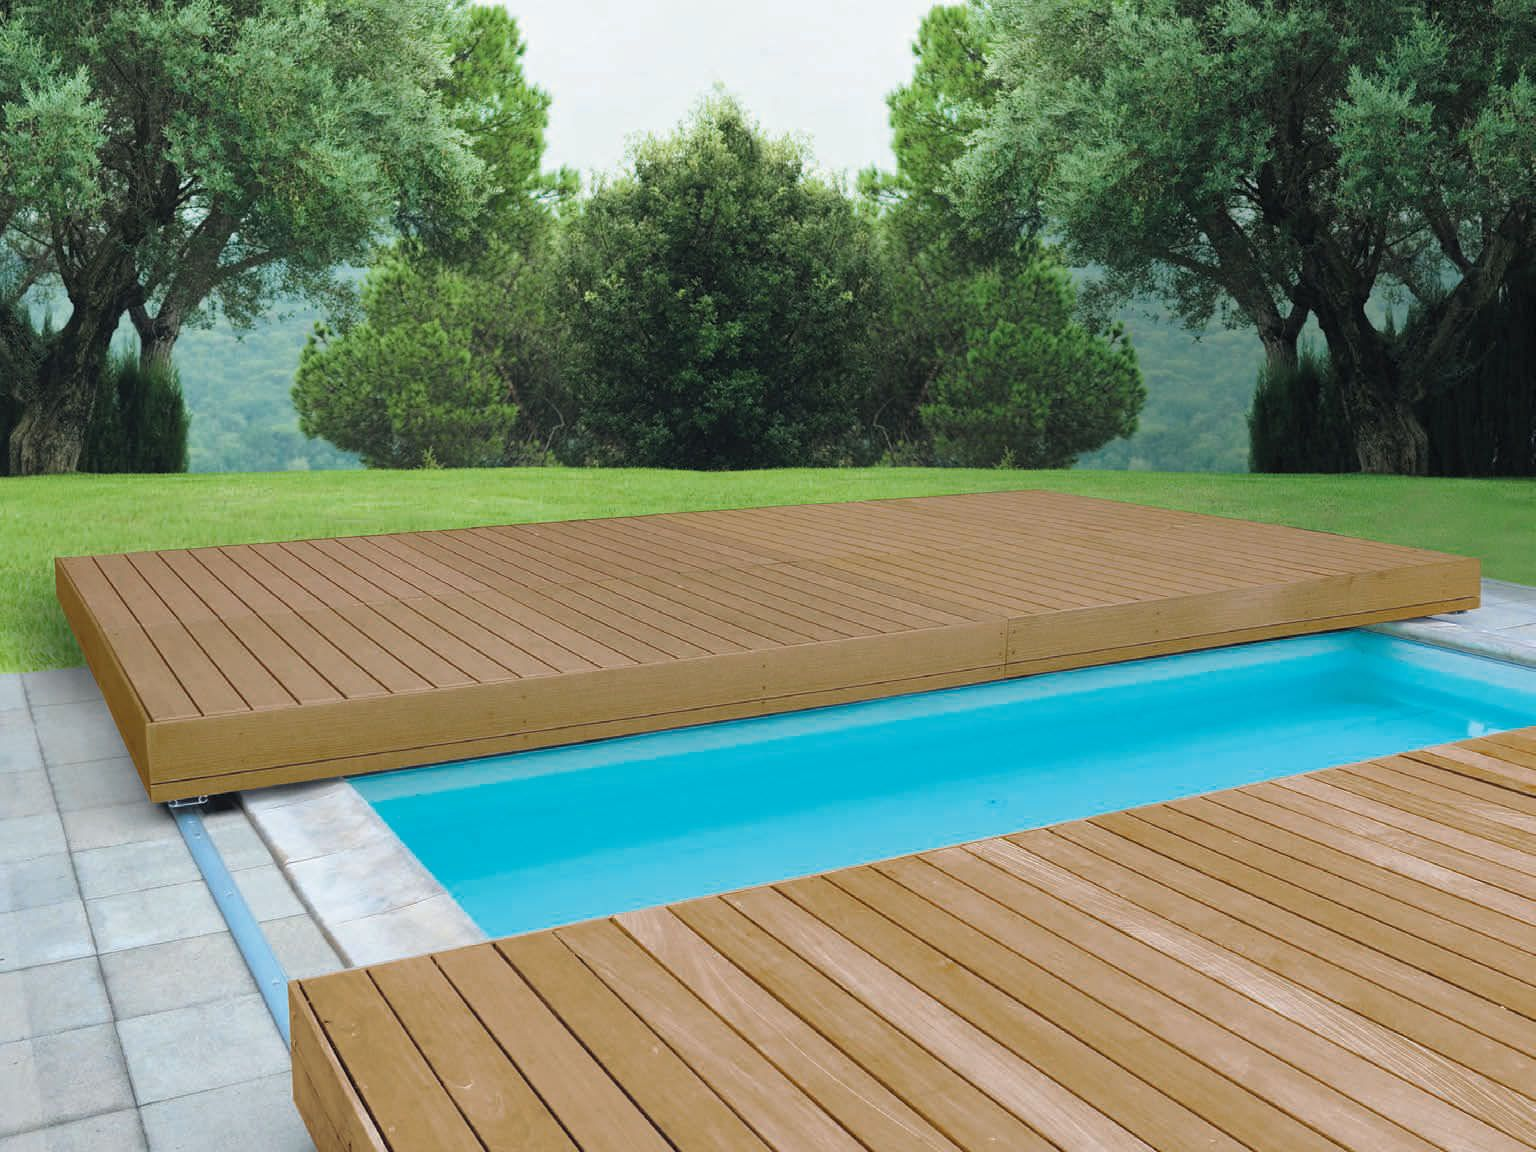 Discover All The Information About The Product Security Sliding Deck Pool  Cover   Walter Piscine And Find Where You Can Buy It.